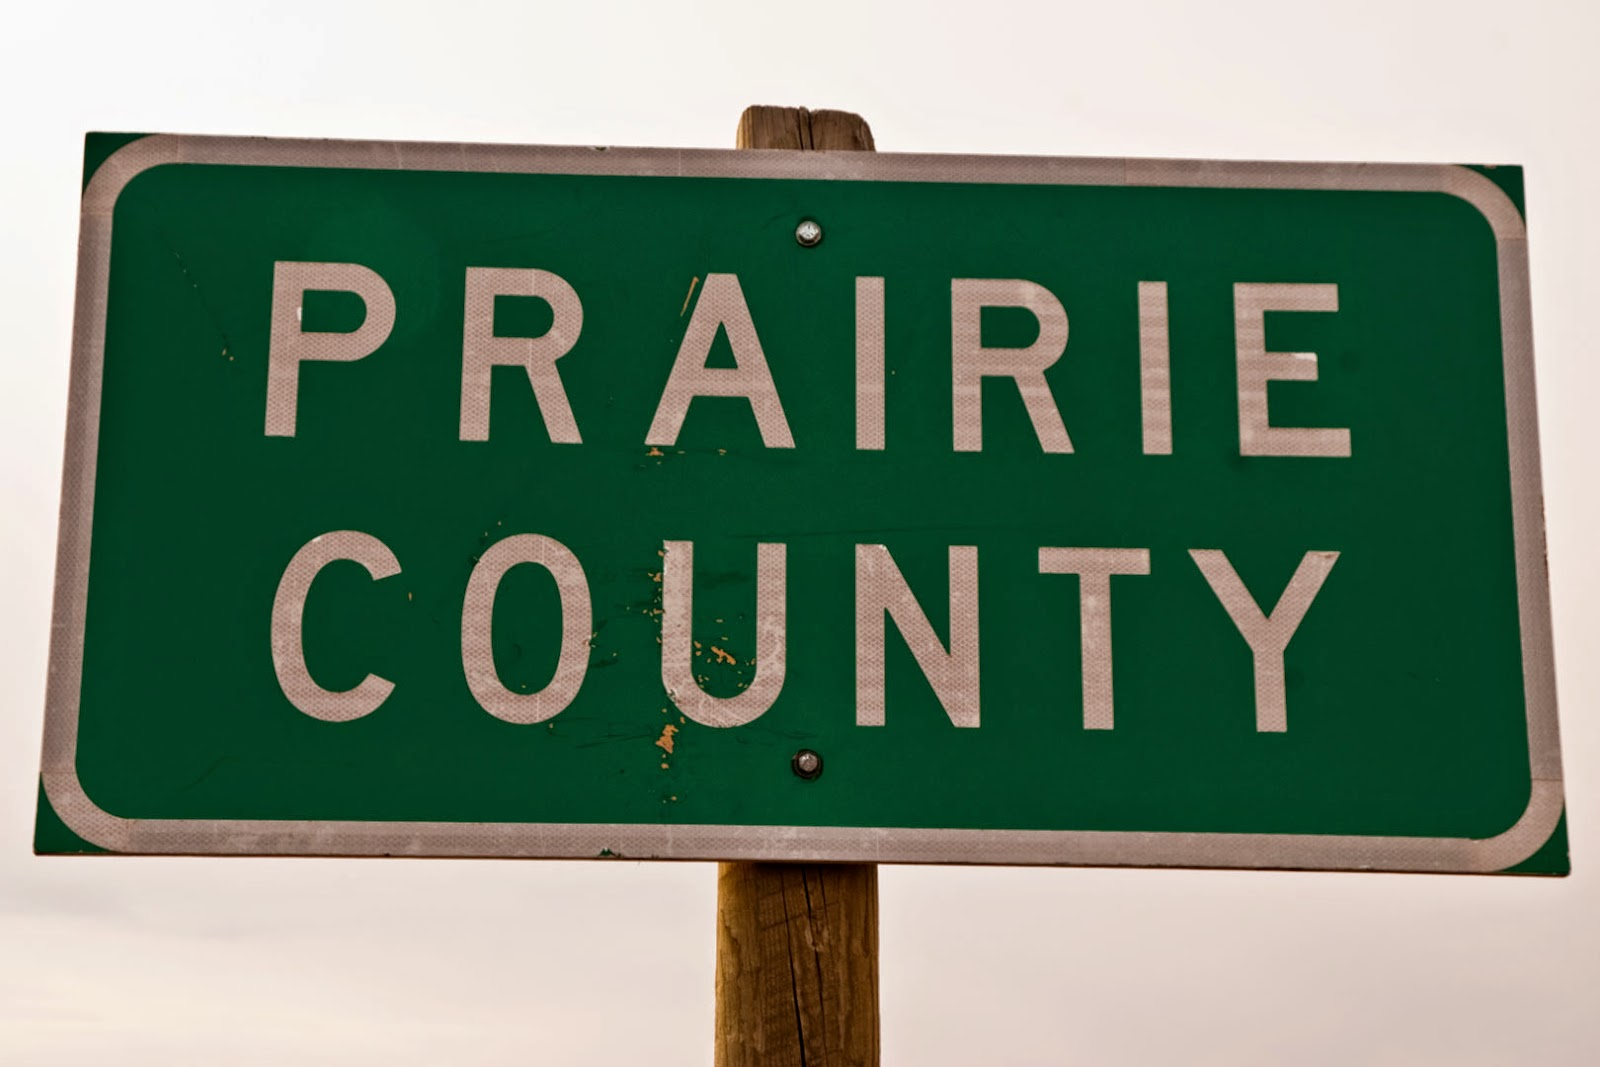 Montana prairie county mildred - Prairie County